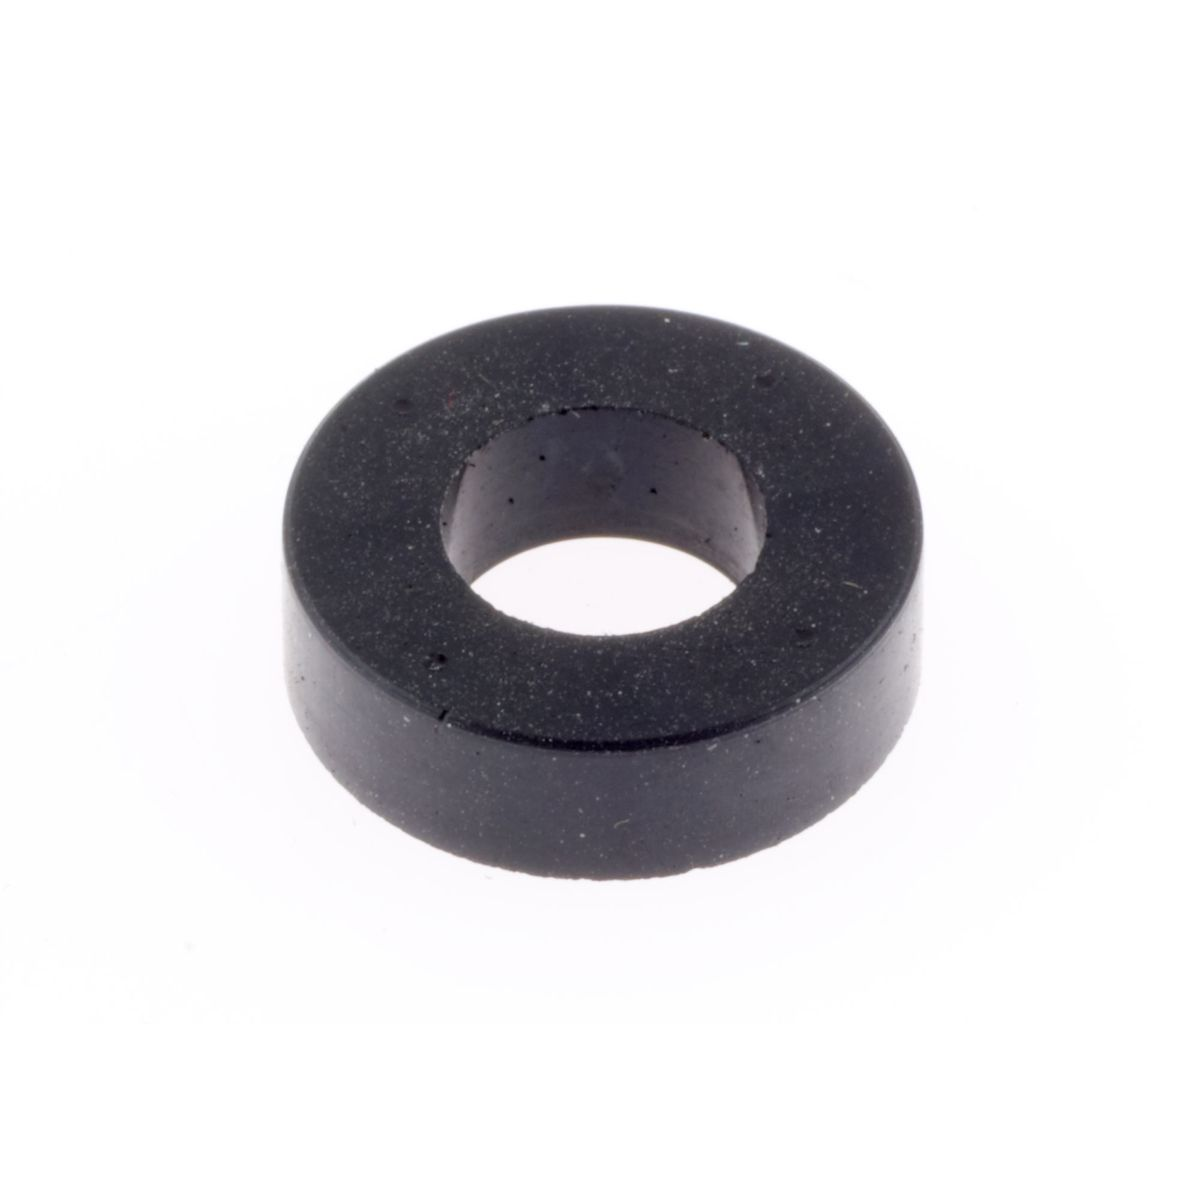 SKS Germany SKS valve seal for E.V.A. pump head for Rennkompressor pump | Valve